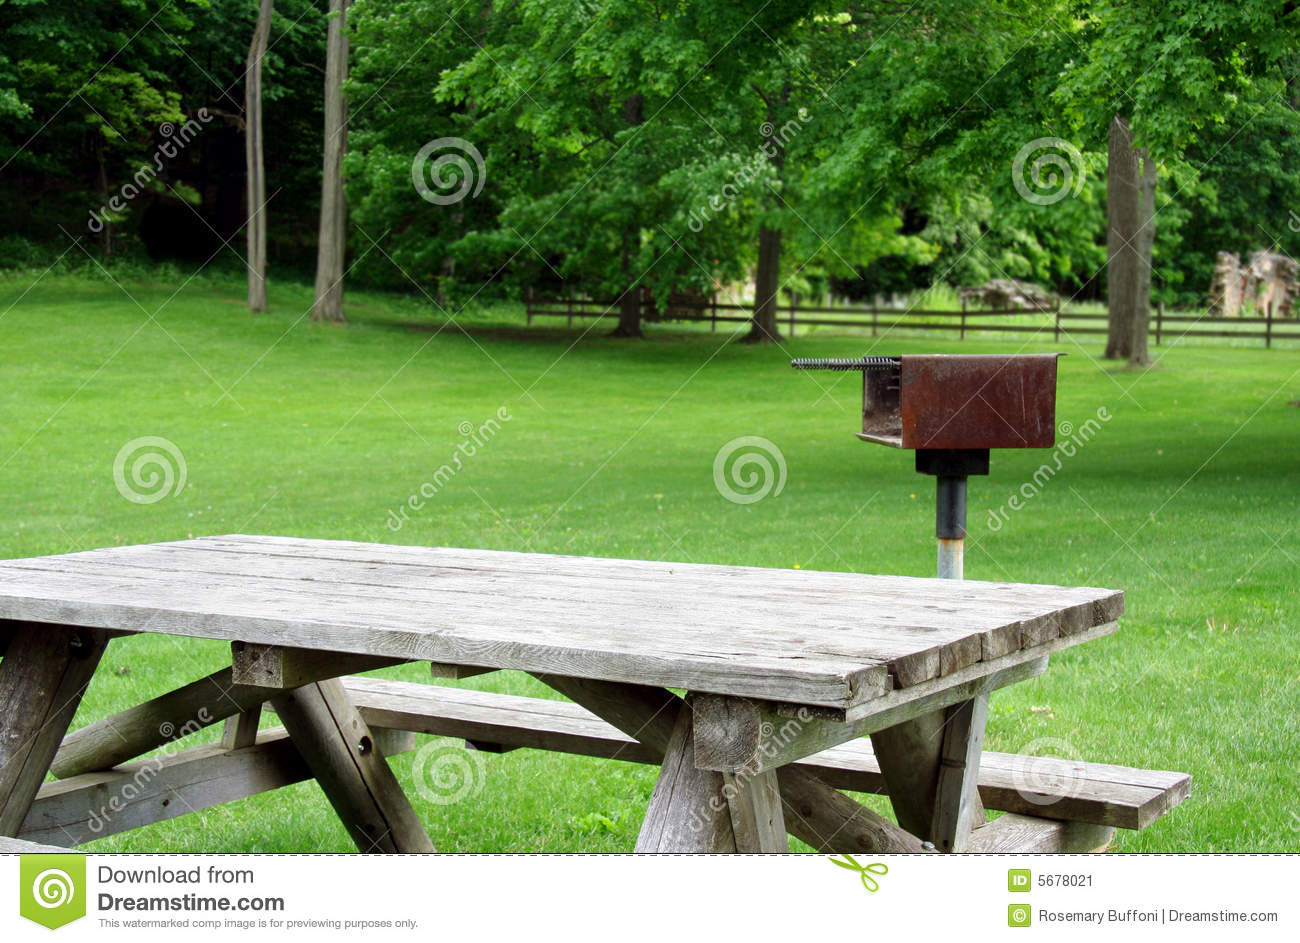 Picnic Table And Grill In Park Stock Image Image Of